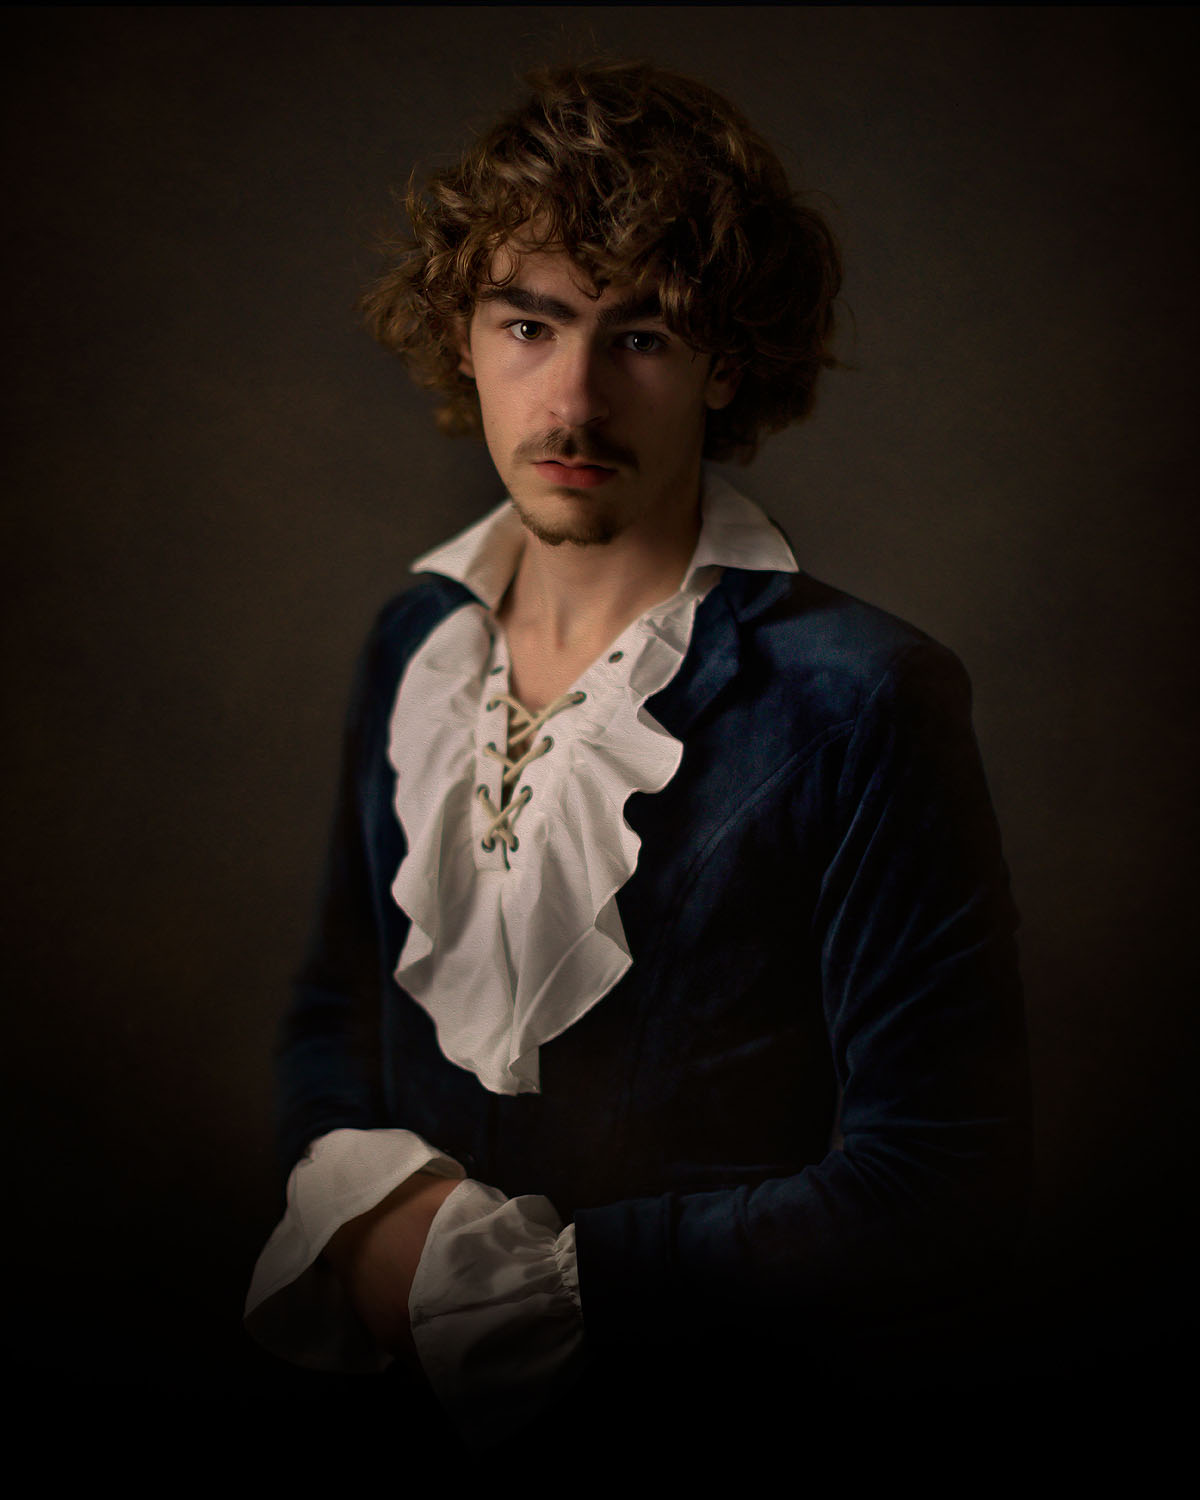 EOS R fine art portrait of the dutch master rembrandt of a young man in a painterly style by Willie Kers Photographer from the netherlands